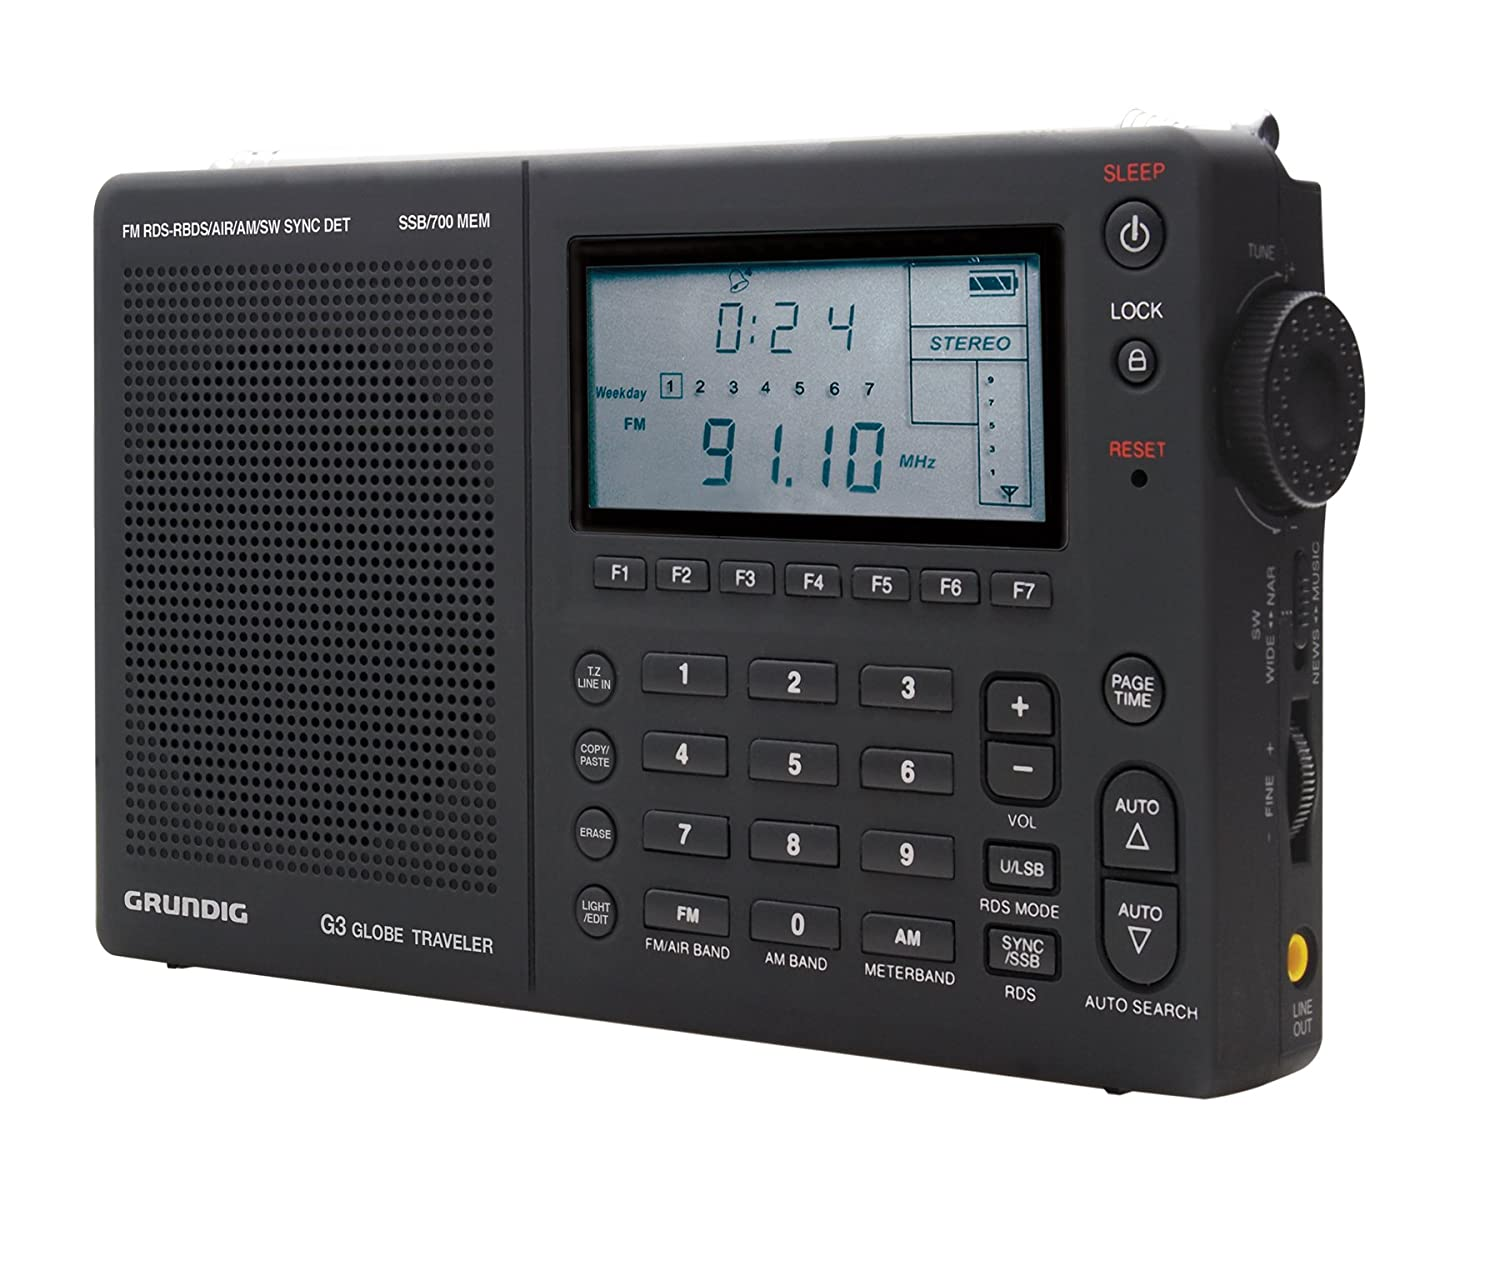 Grundig Globe Traveler G3 Portable AM/FM/Shortwave Radio, Black – (NG3B) $90.87